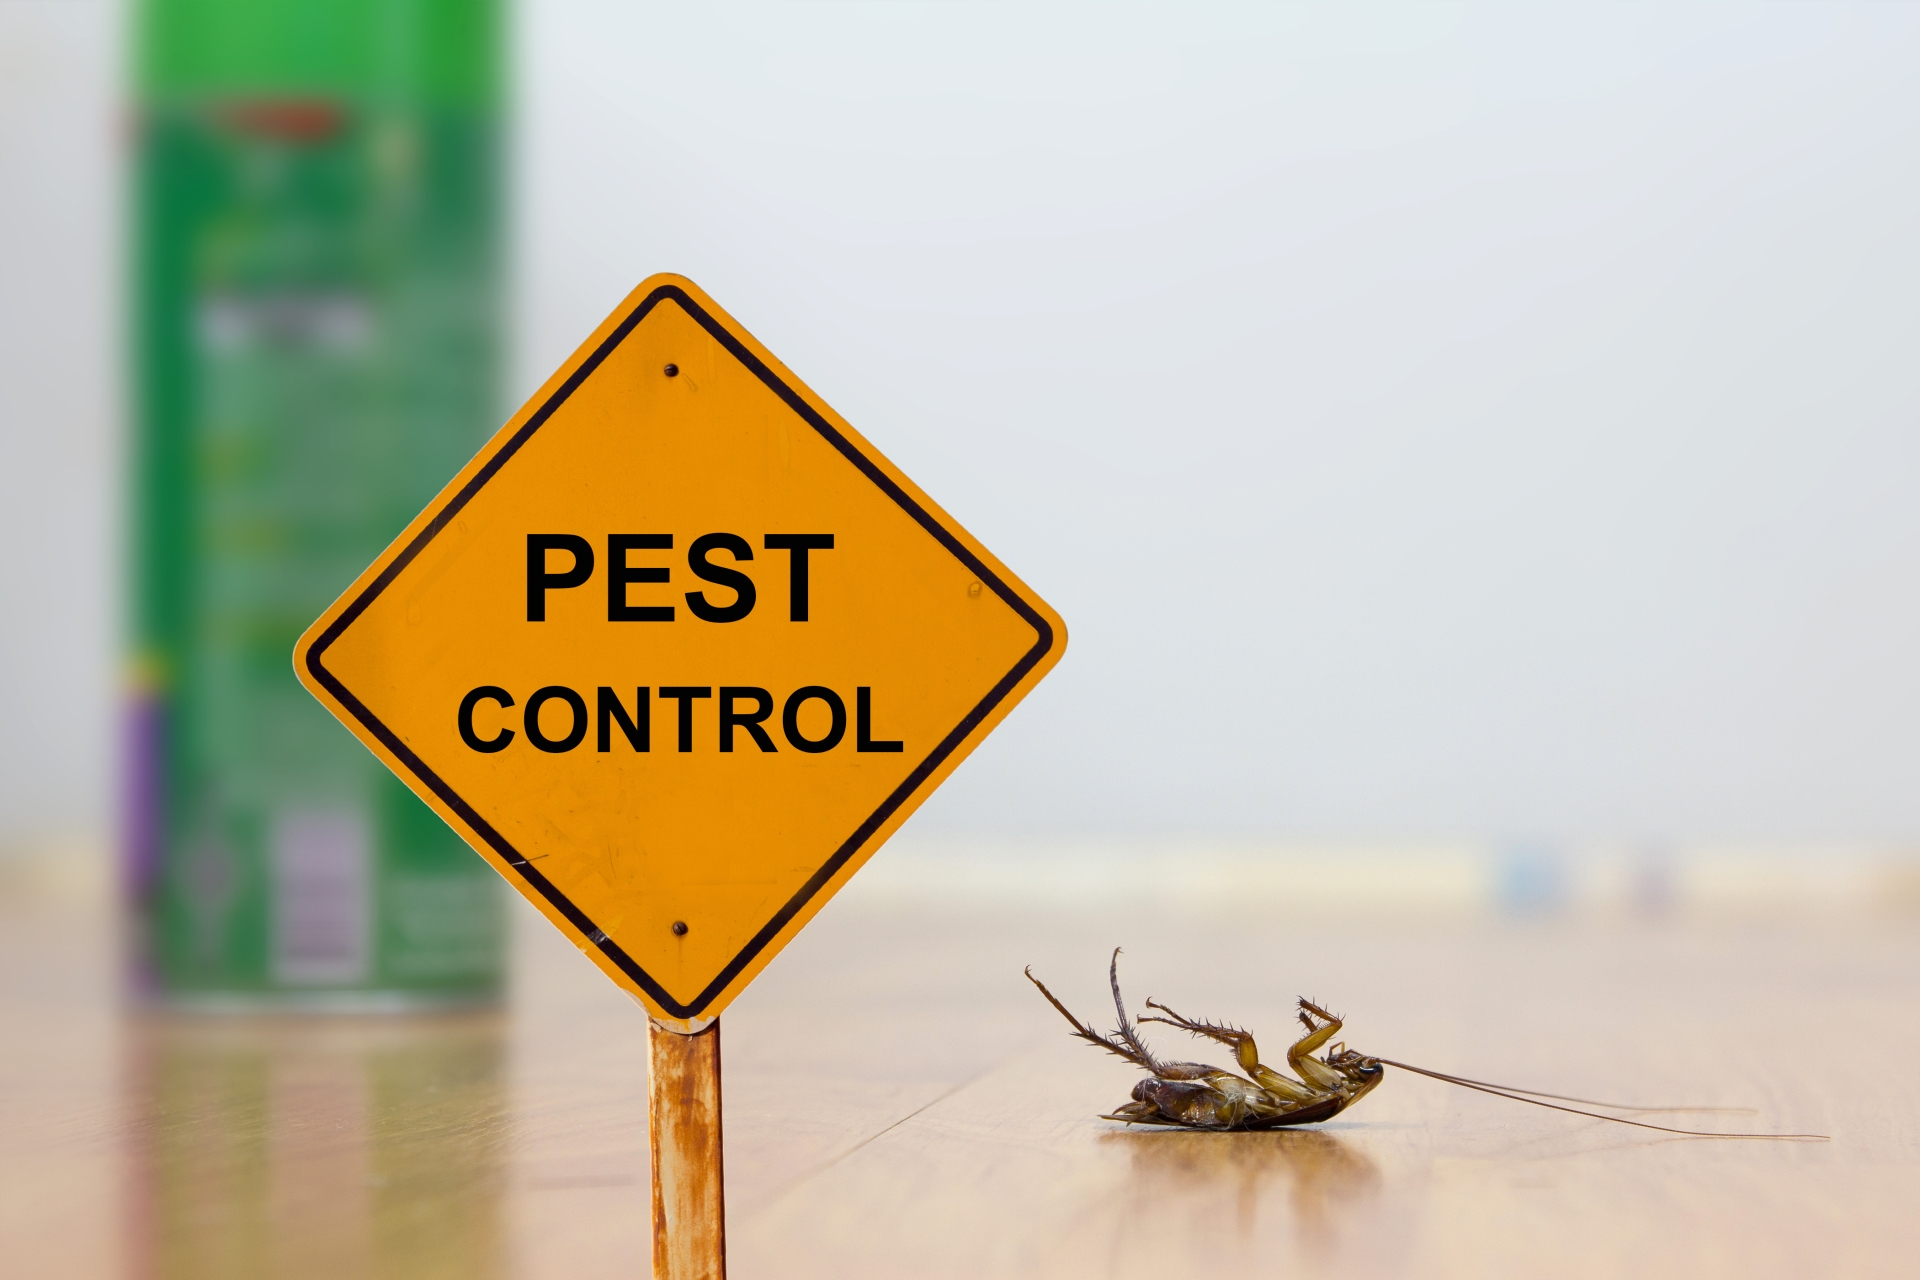 24 Hour Pest Control, Pest Control in Cheshunt, Waltham Cross, EN8. Call Now 020 8166 9746